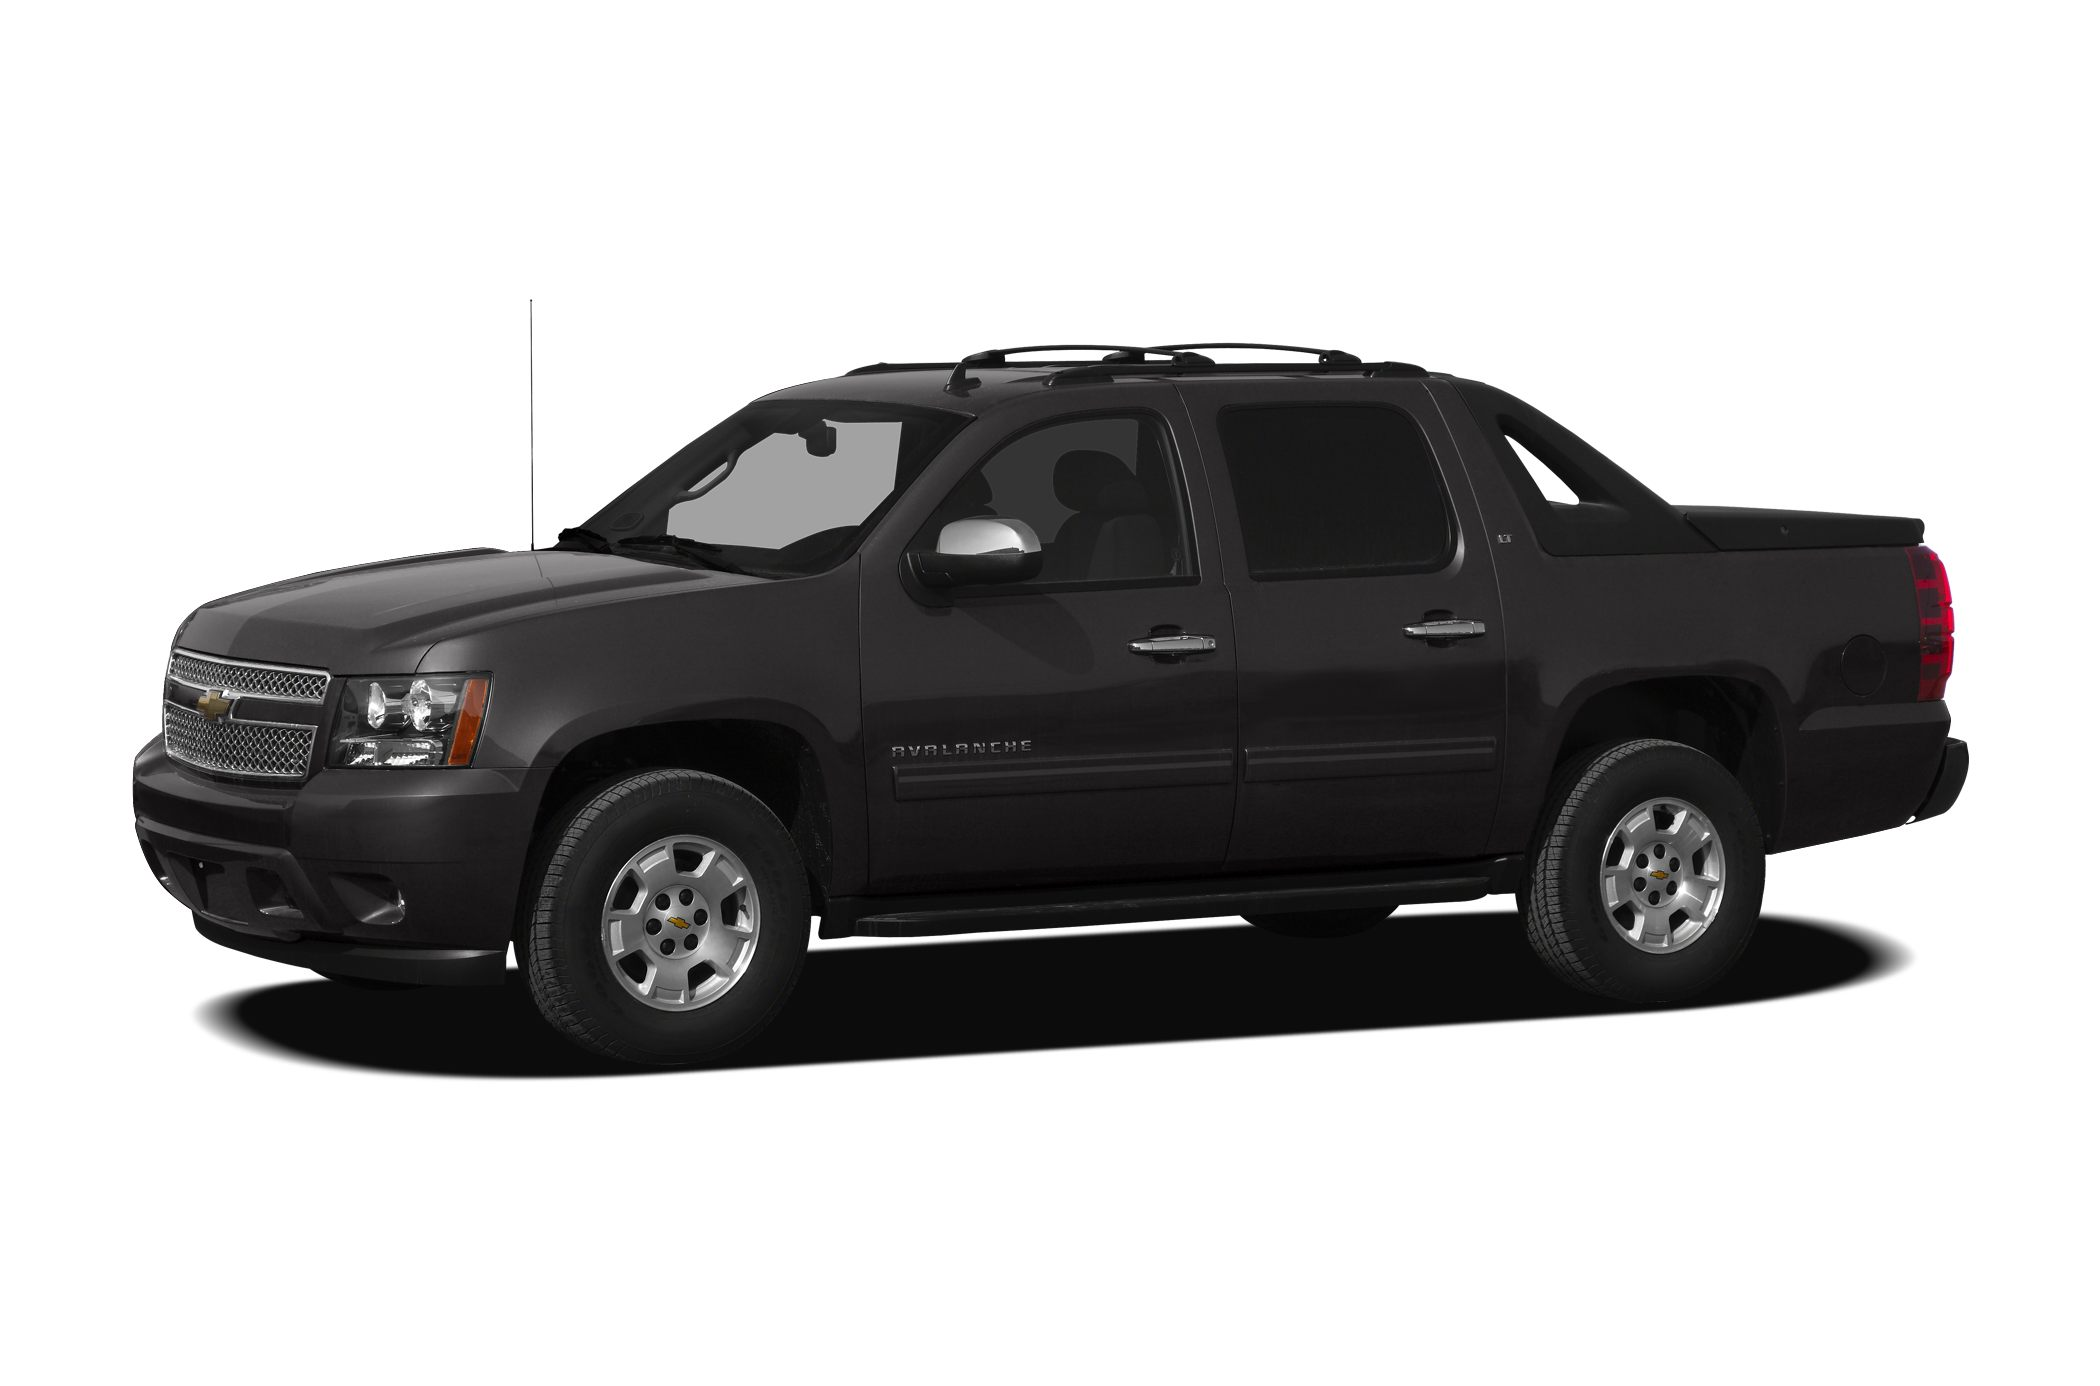 2012 Chevrolet Avalanche 1500 LT Crew Cab Pickup for sale in Memphis for $32,495 with 79,457 miles